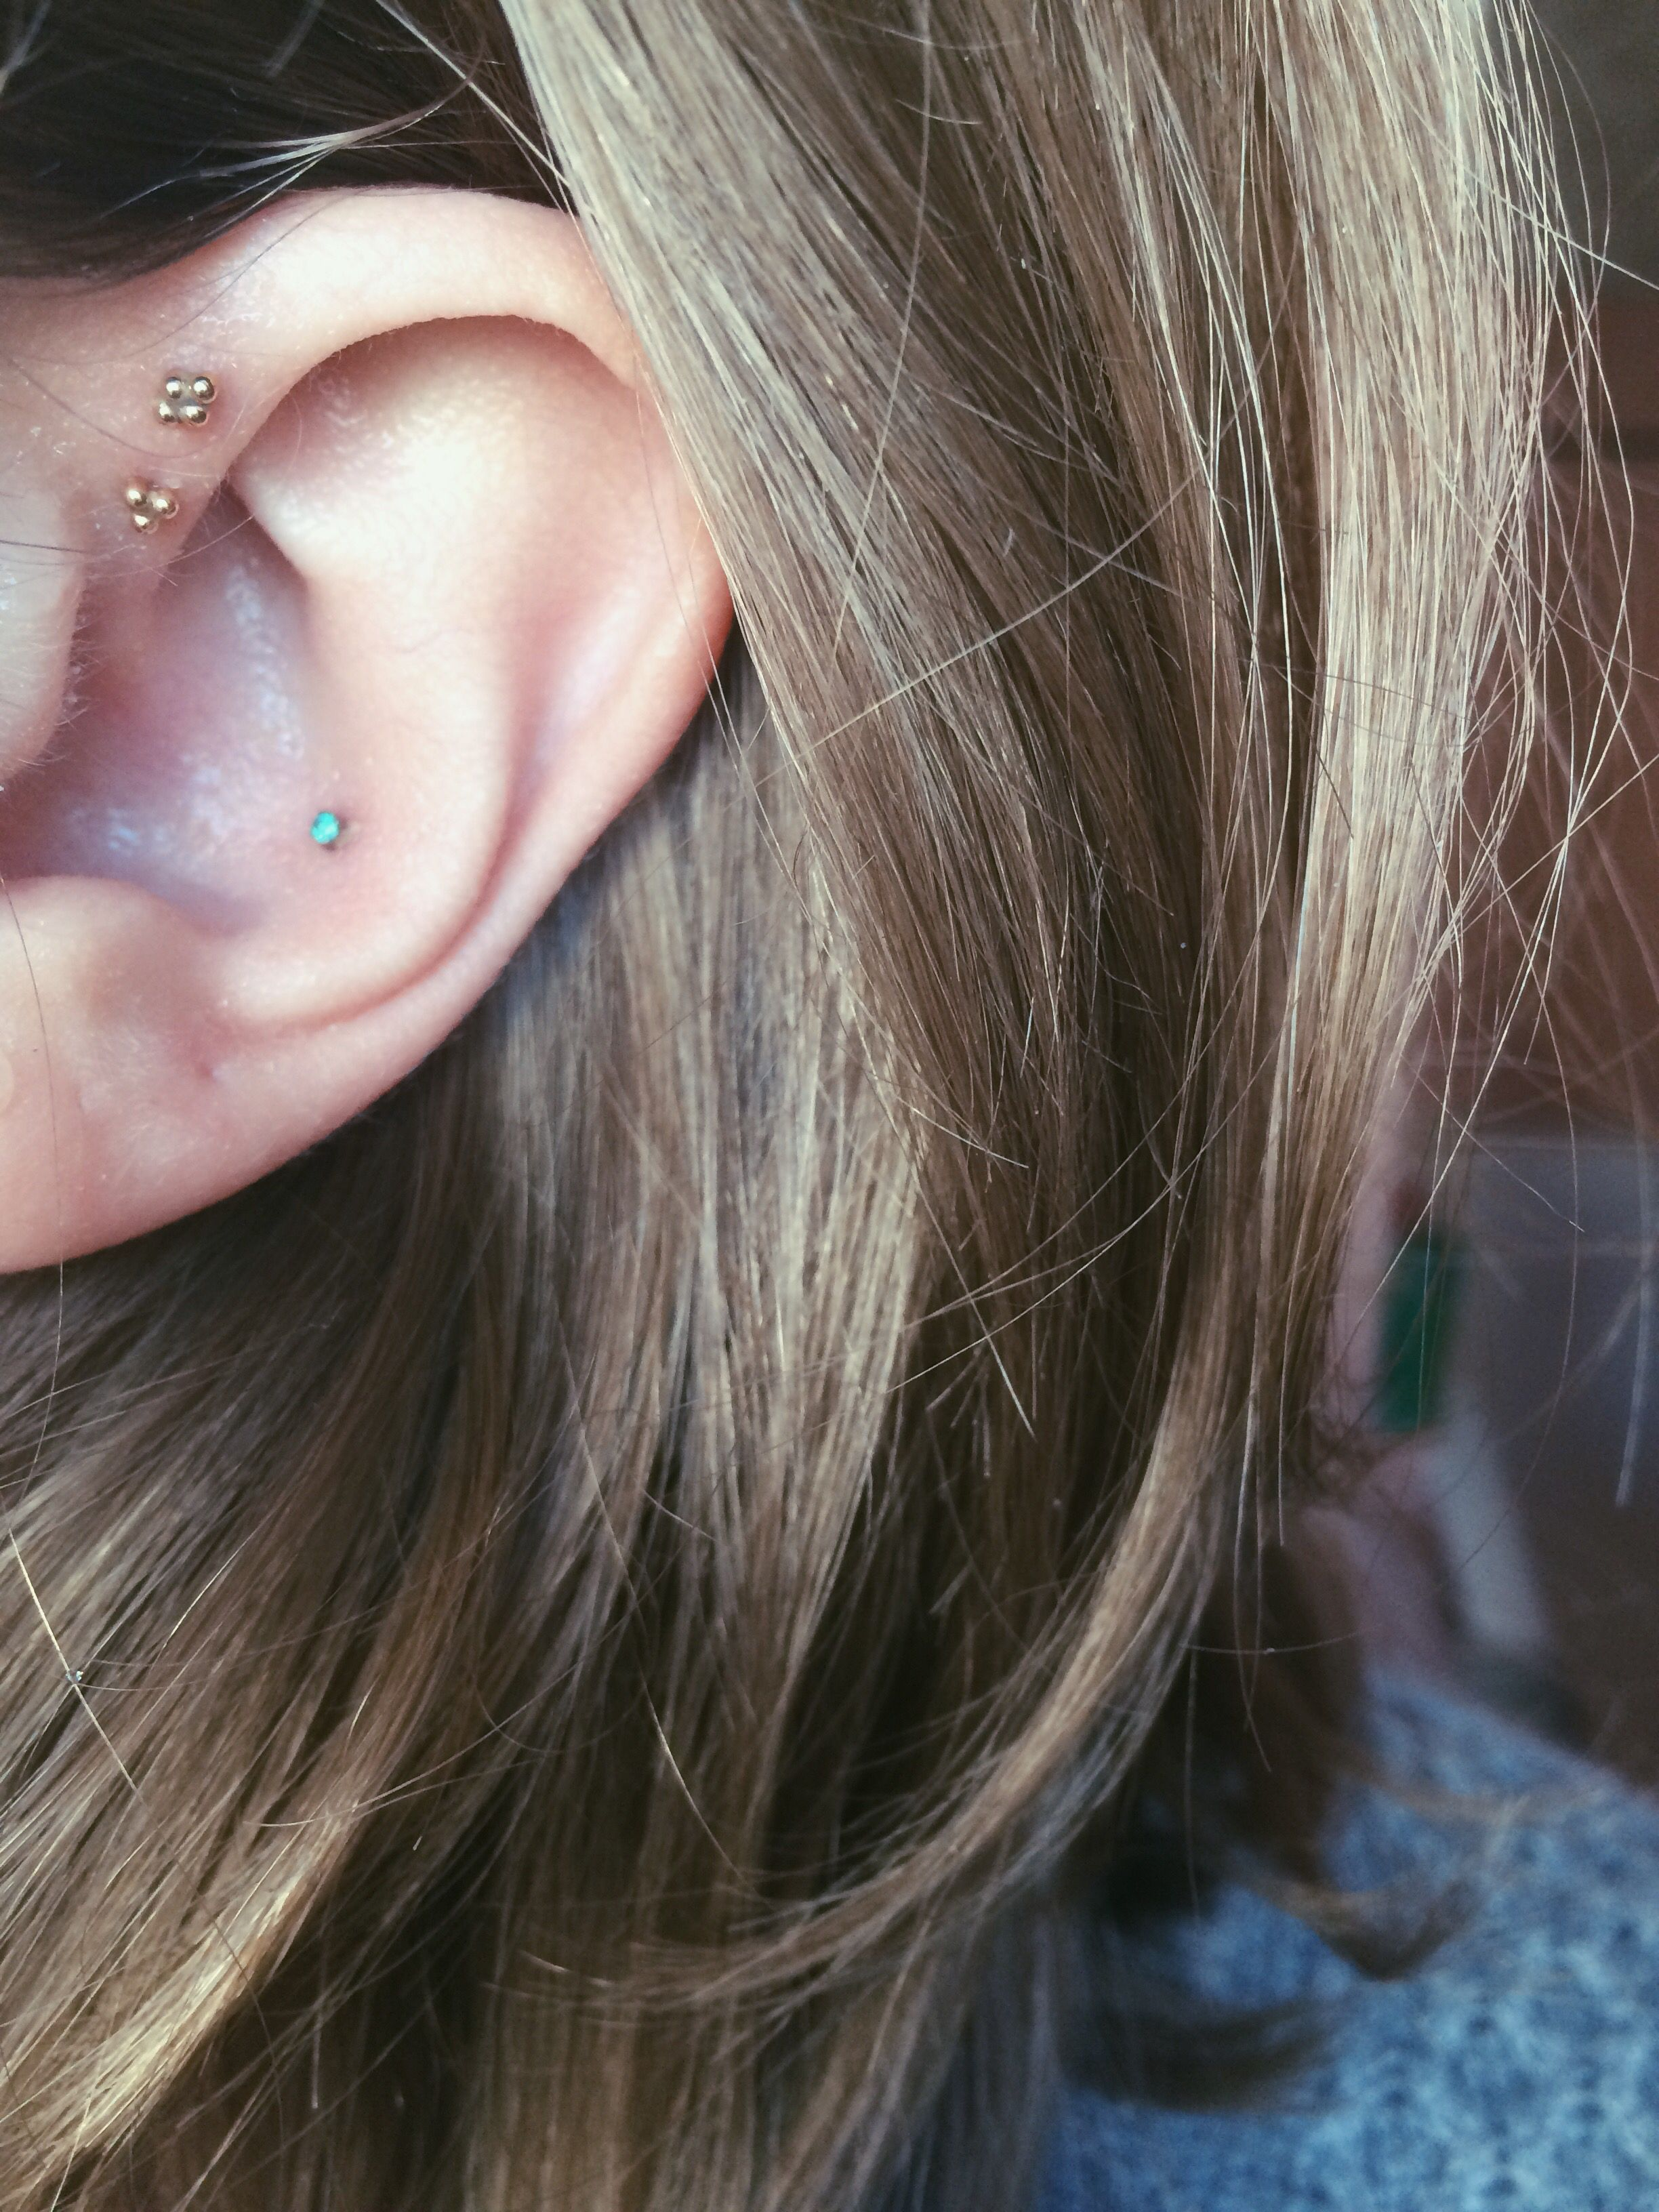 2nd ear piercing ideas  Tiny gold and turquoise earrings double forward helix conch